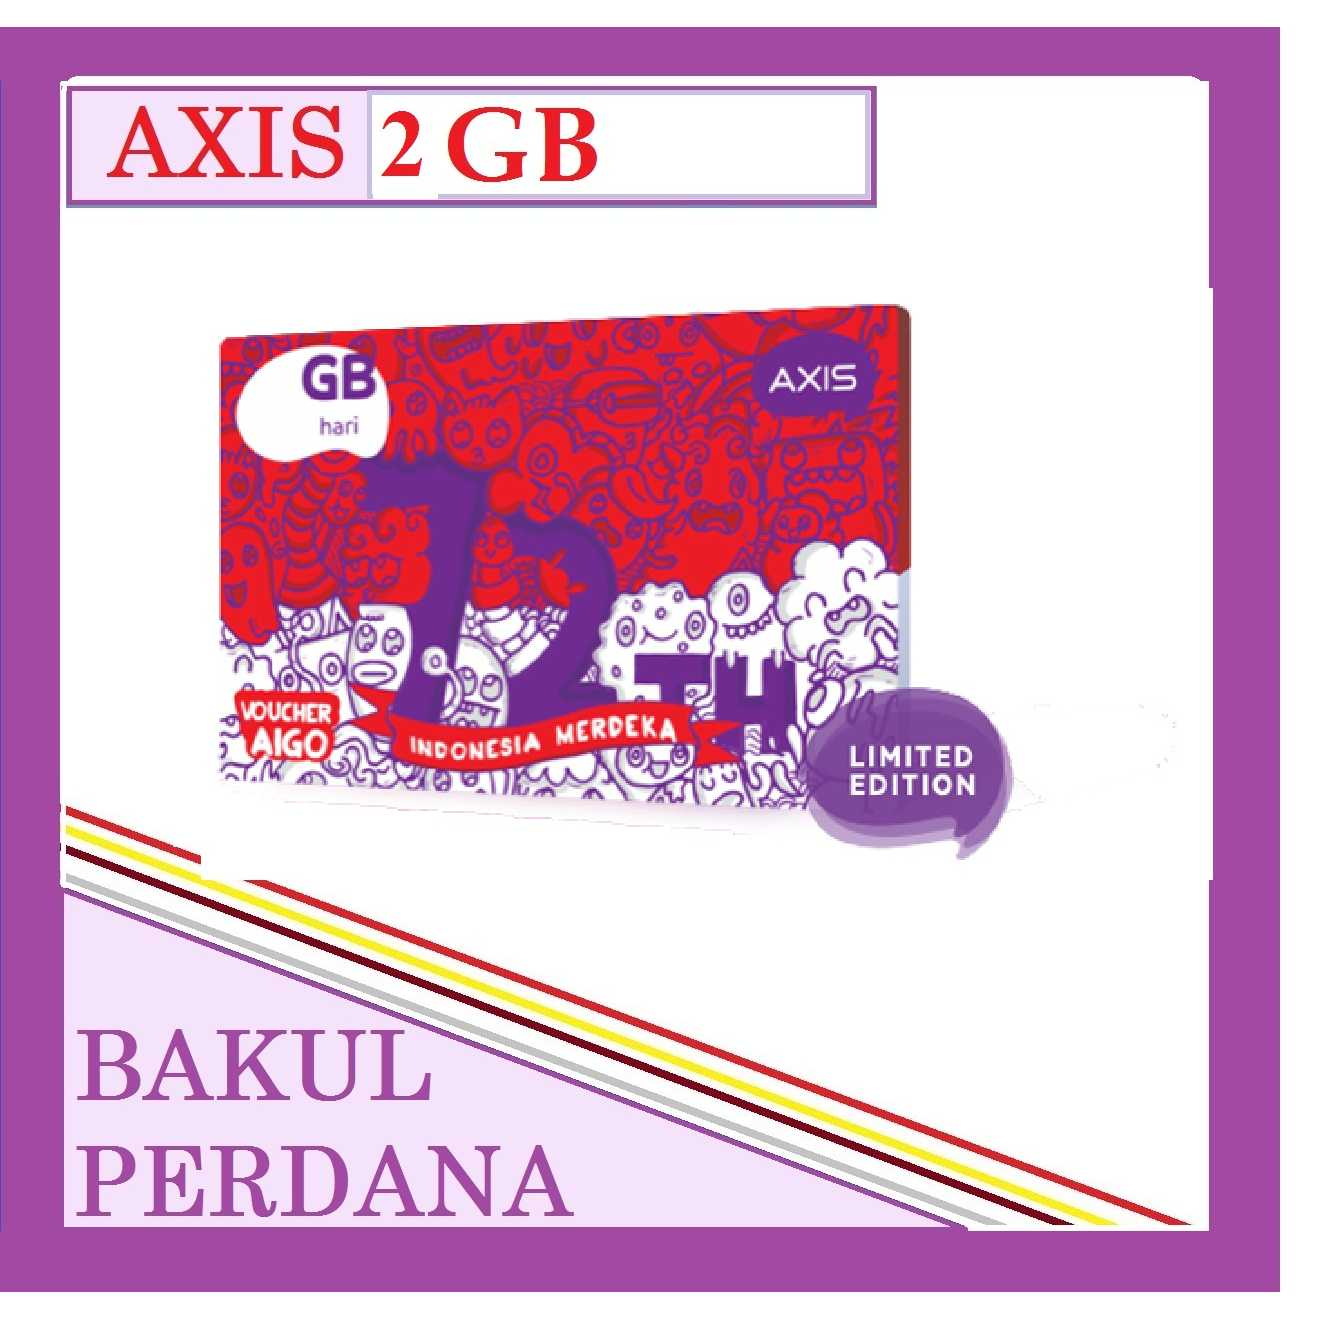 Jual Voucher Axis Aigo 2 Gb Perdana Axiss